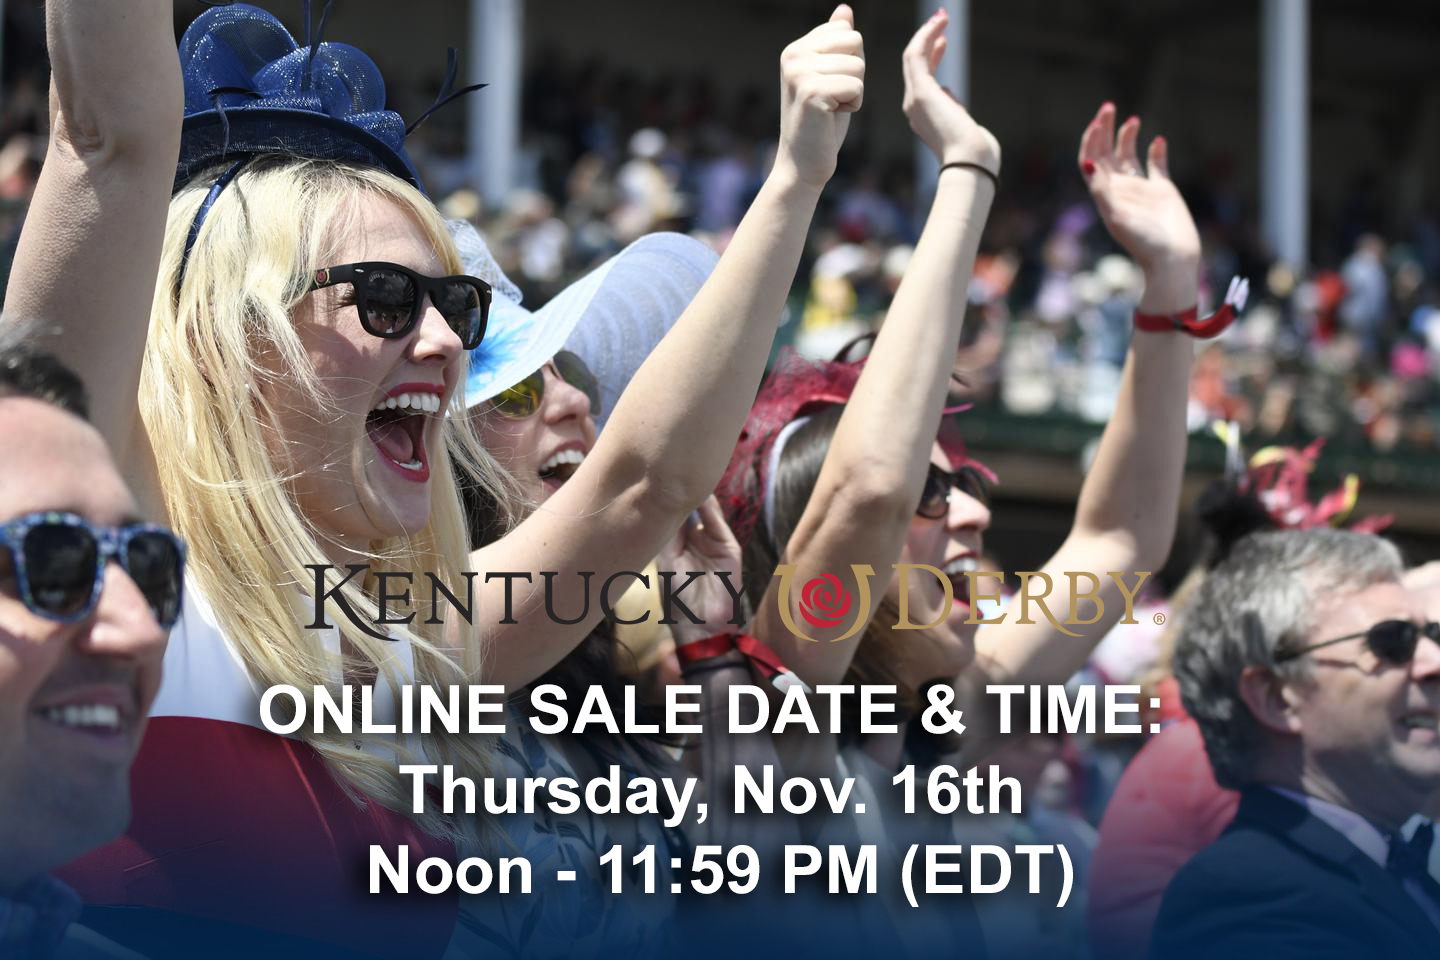 Exclusive Presale access for 2018 Kentucky Derby Ticket Sale